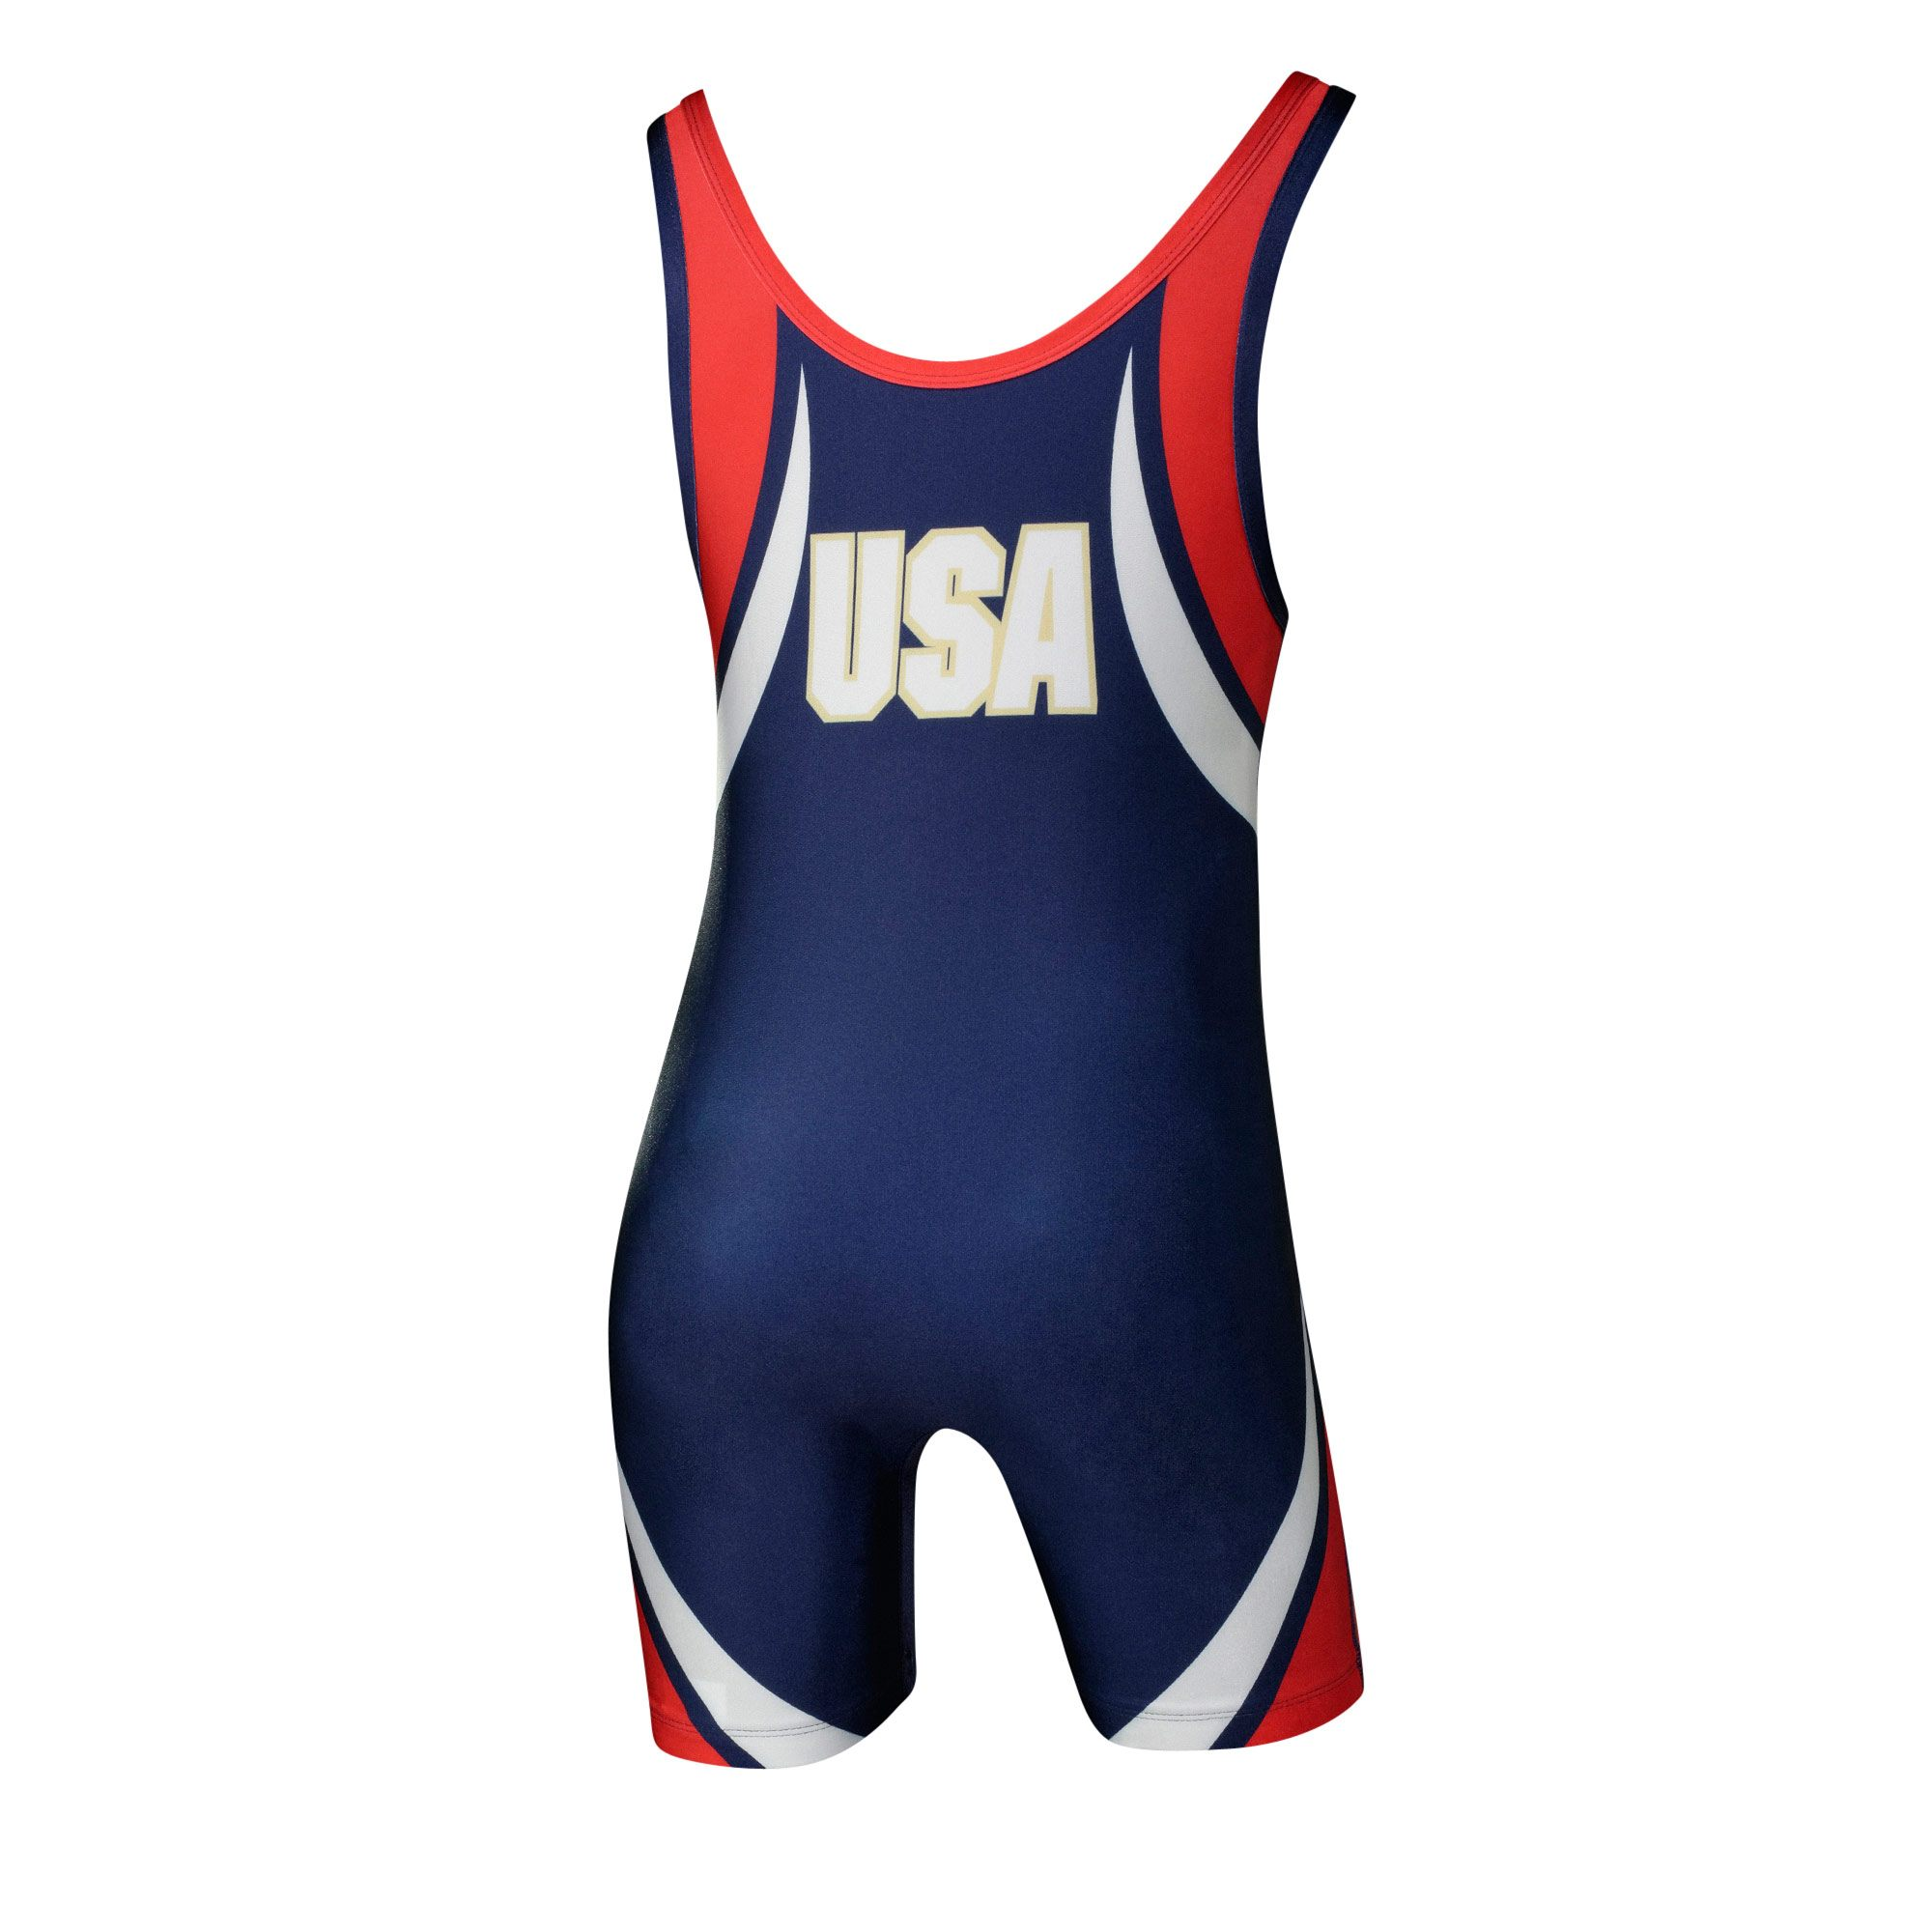 usa mat wrestling